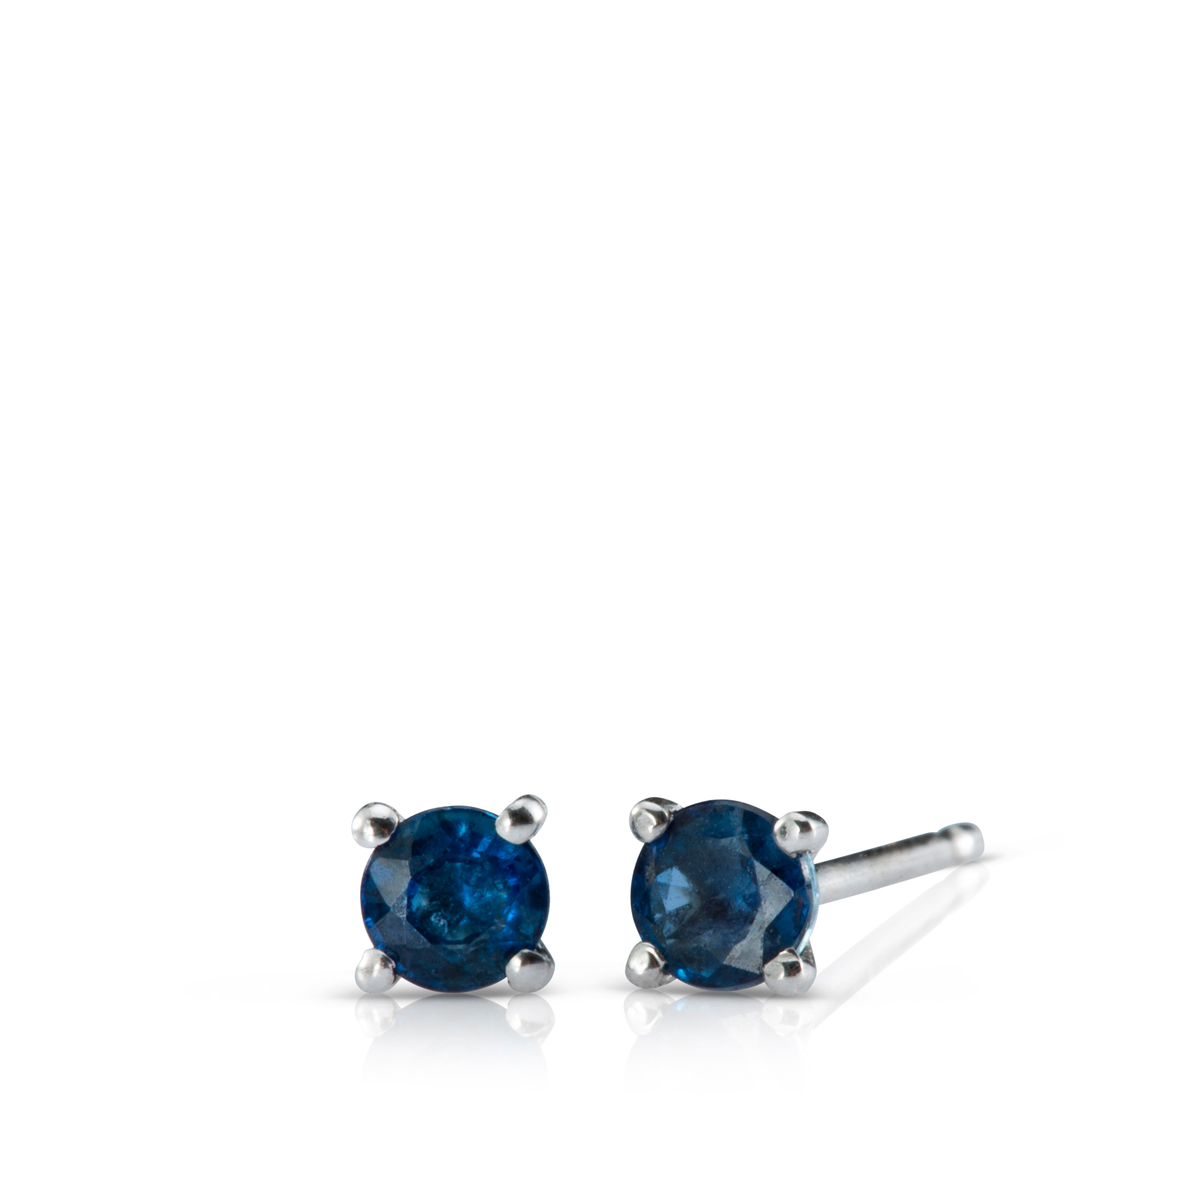 Solitaire Sapphire earrings